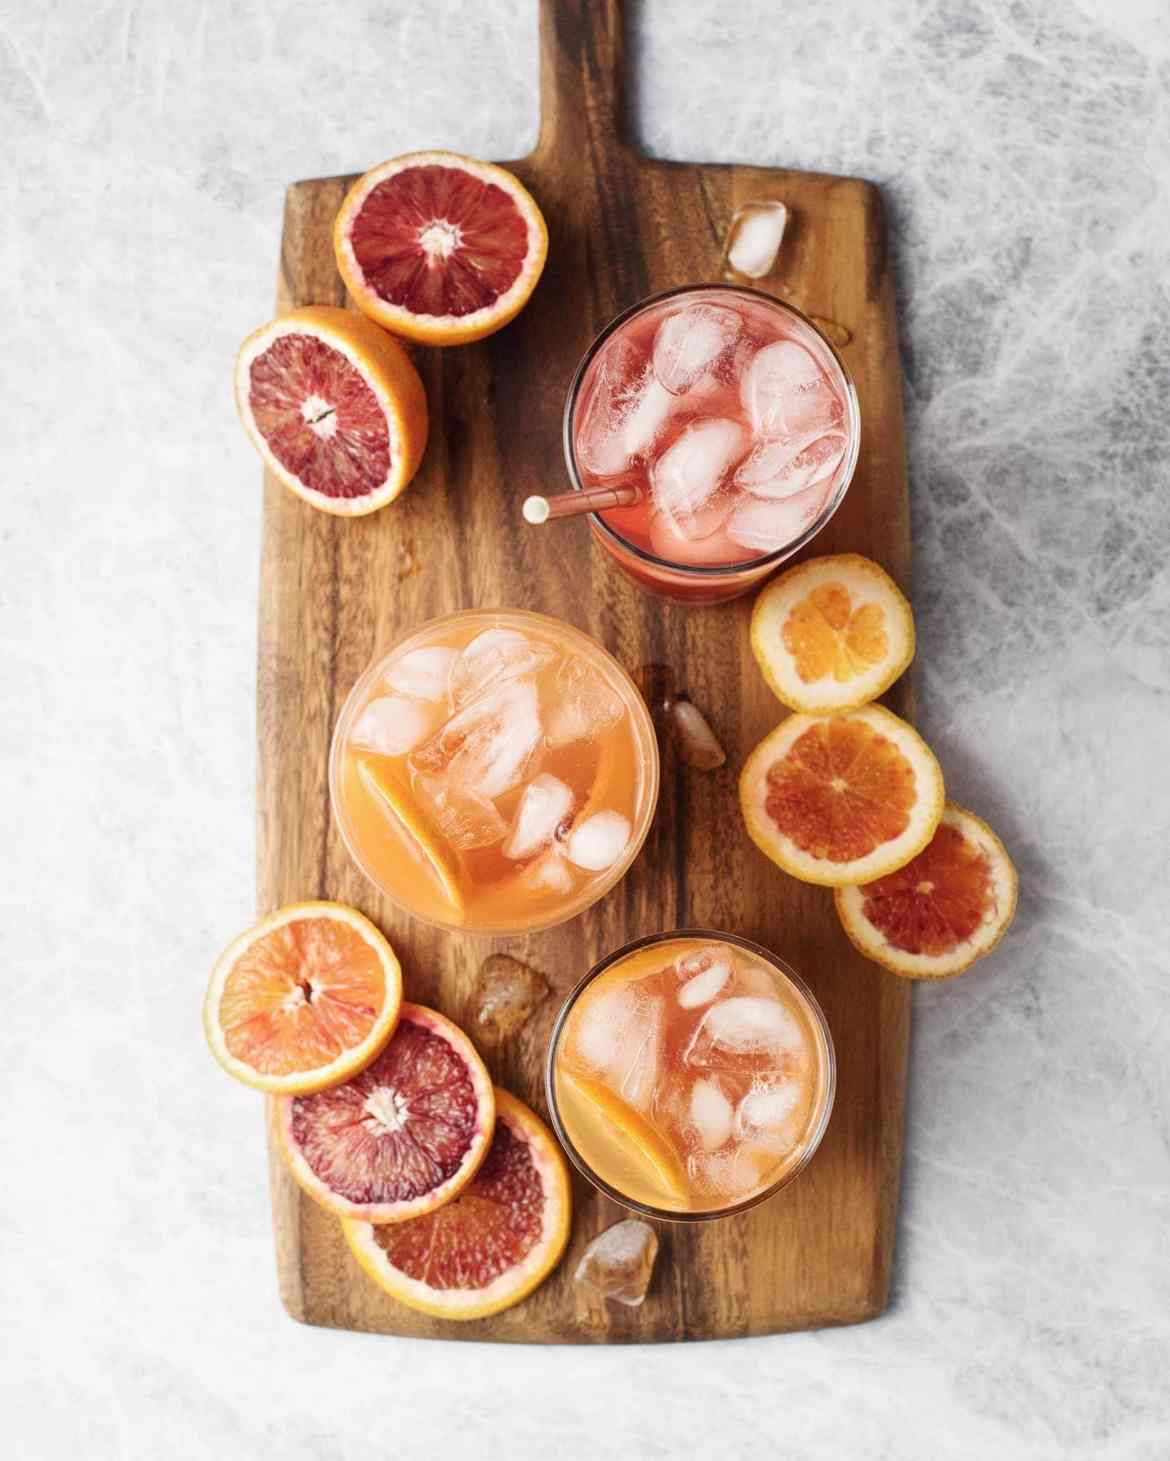 Glasses of blood orange palomas and blood orange slices on a wooden serving board